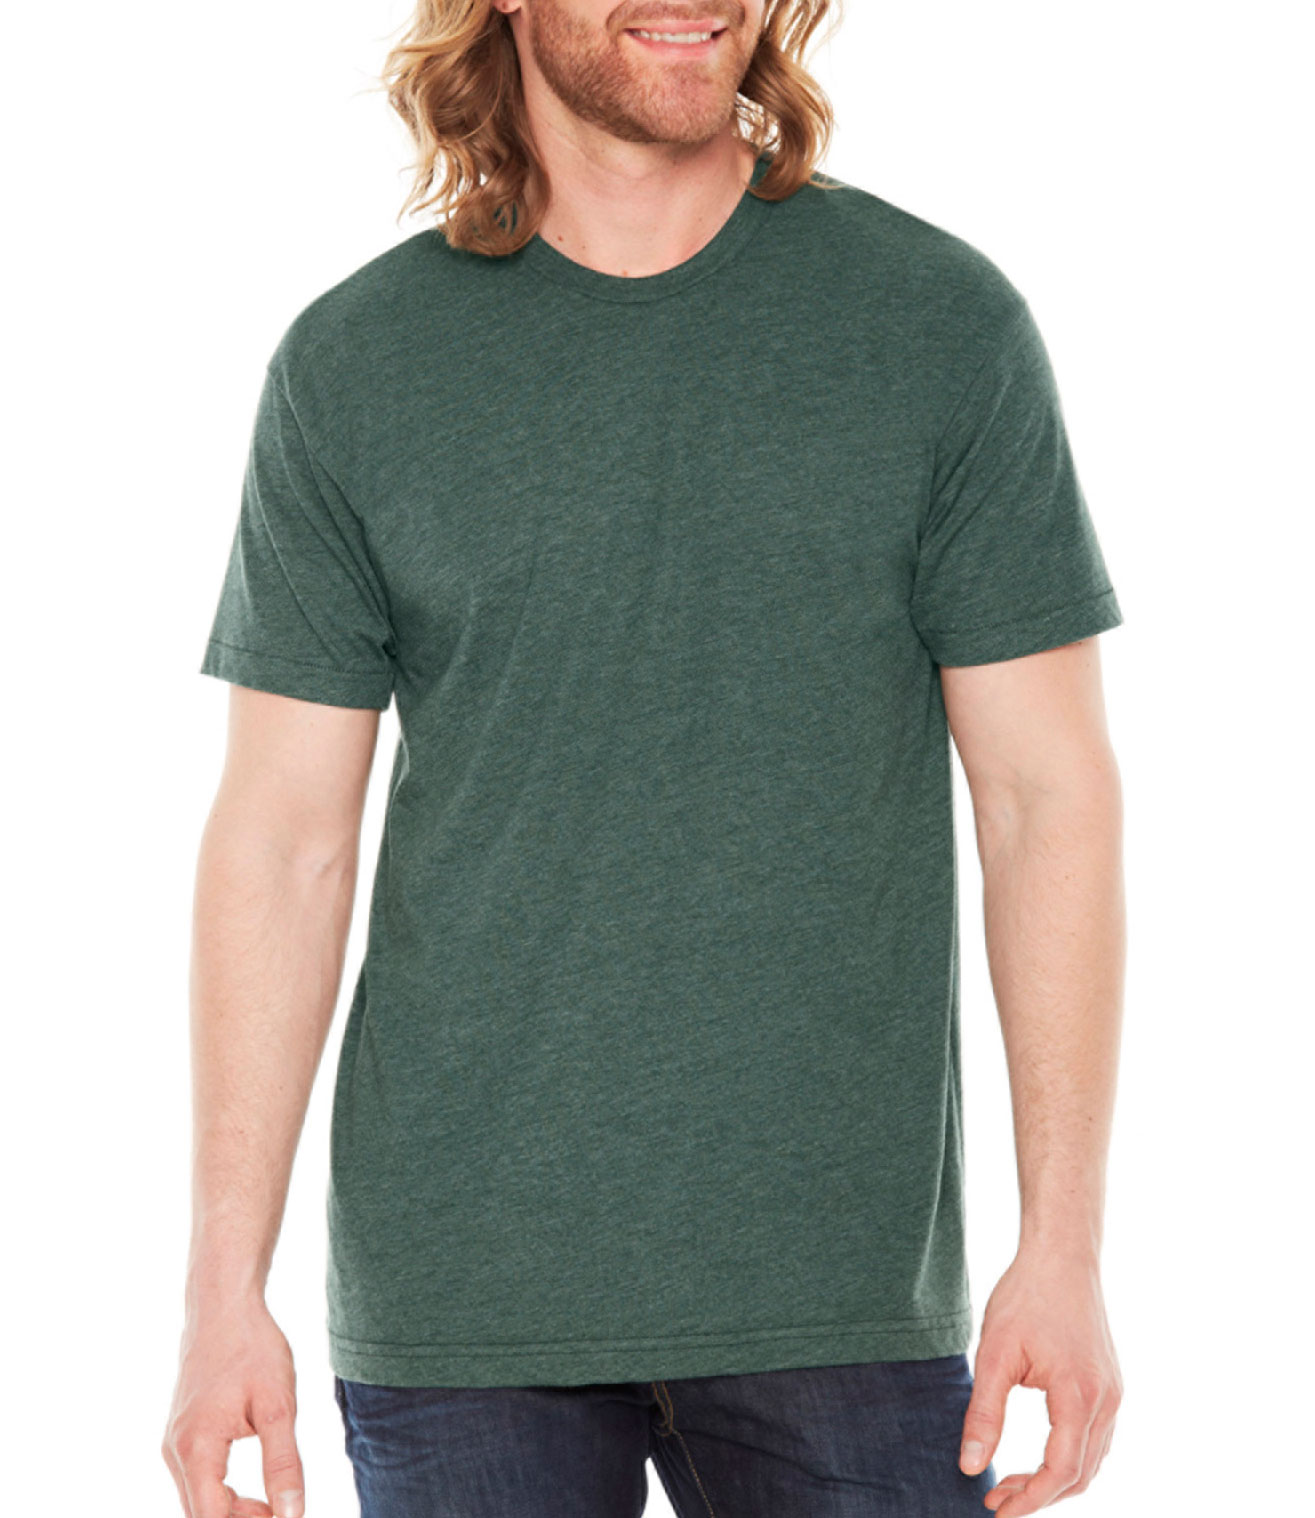 American Apparel Adult Unisex Poly-Cotton Tee